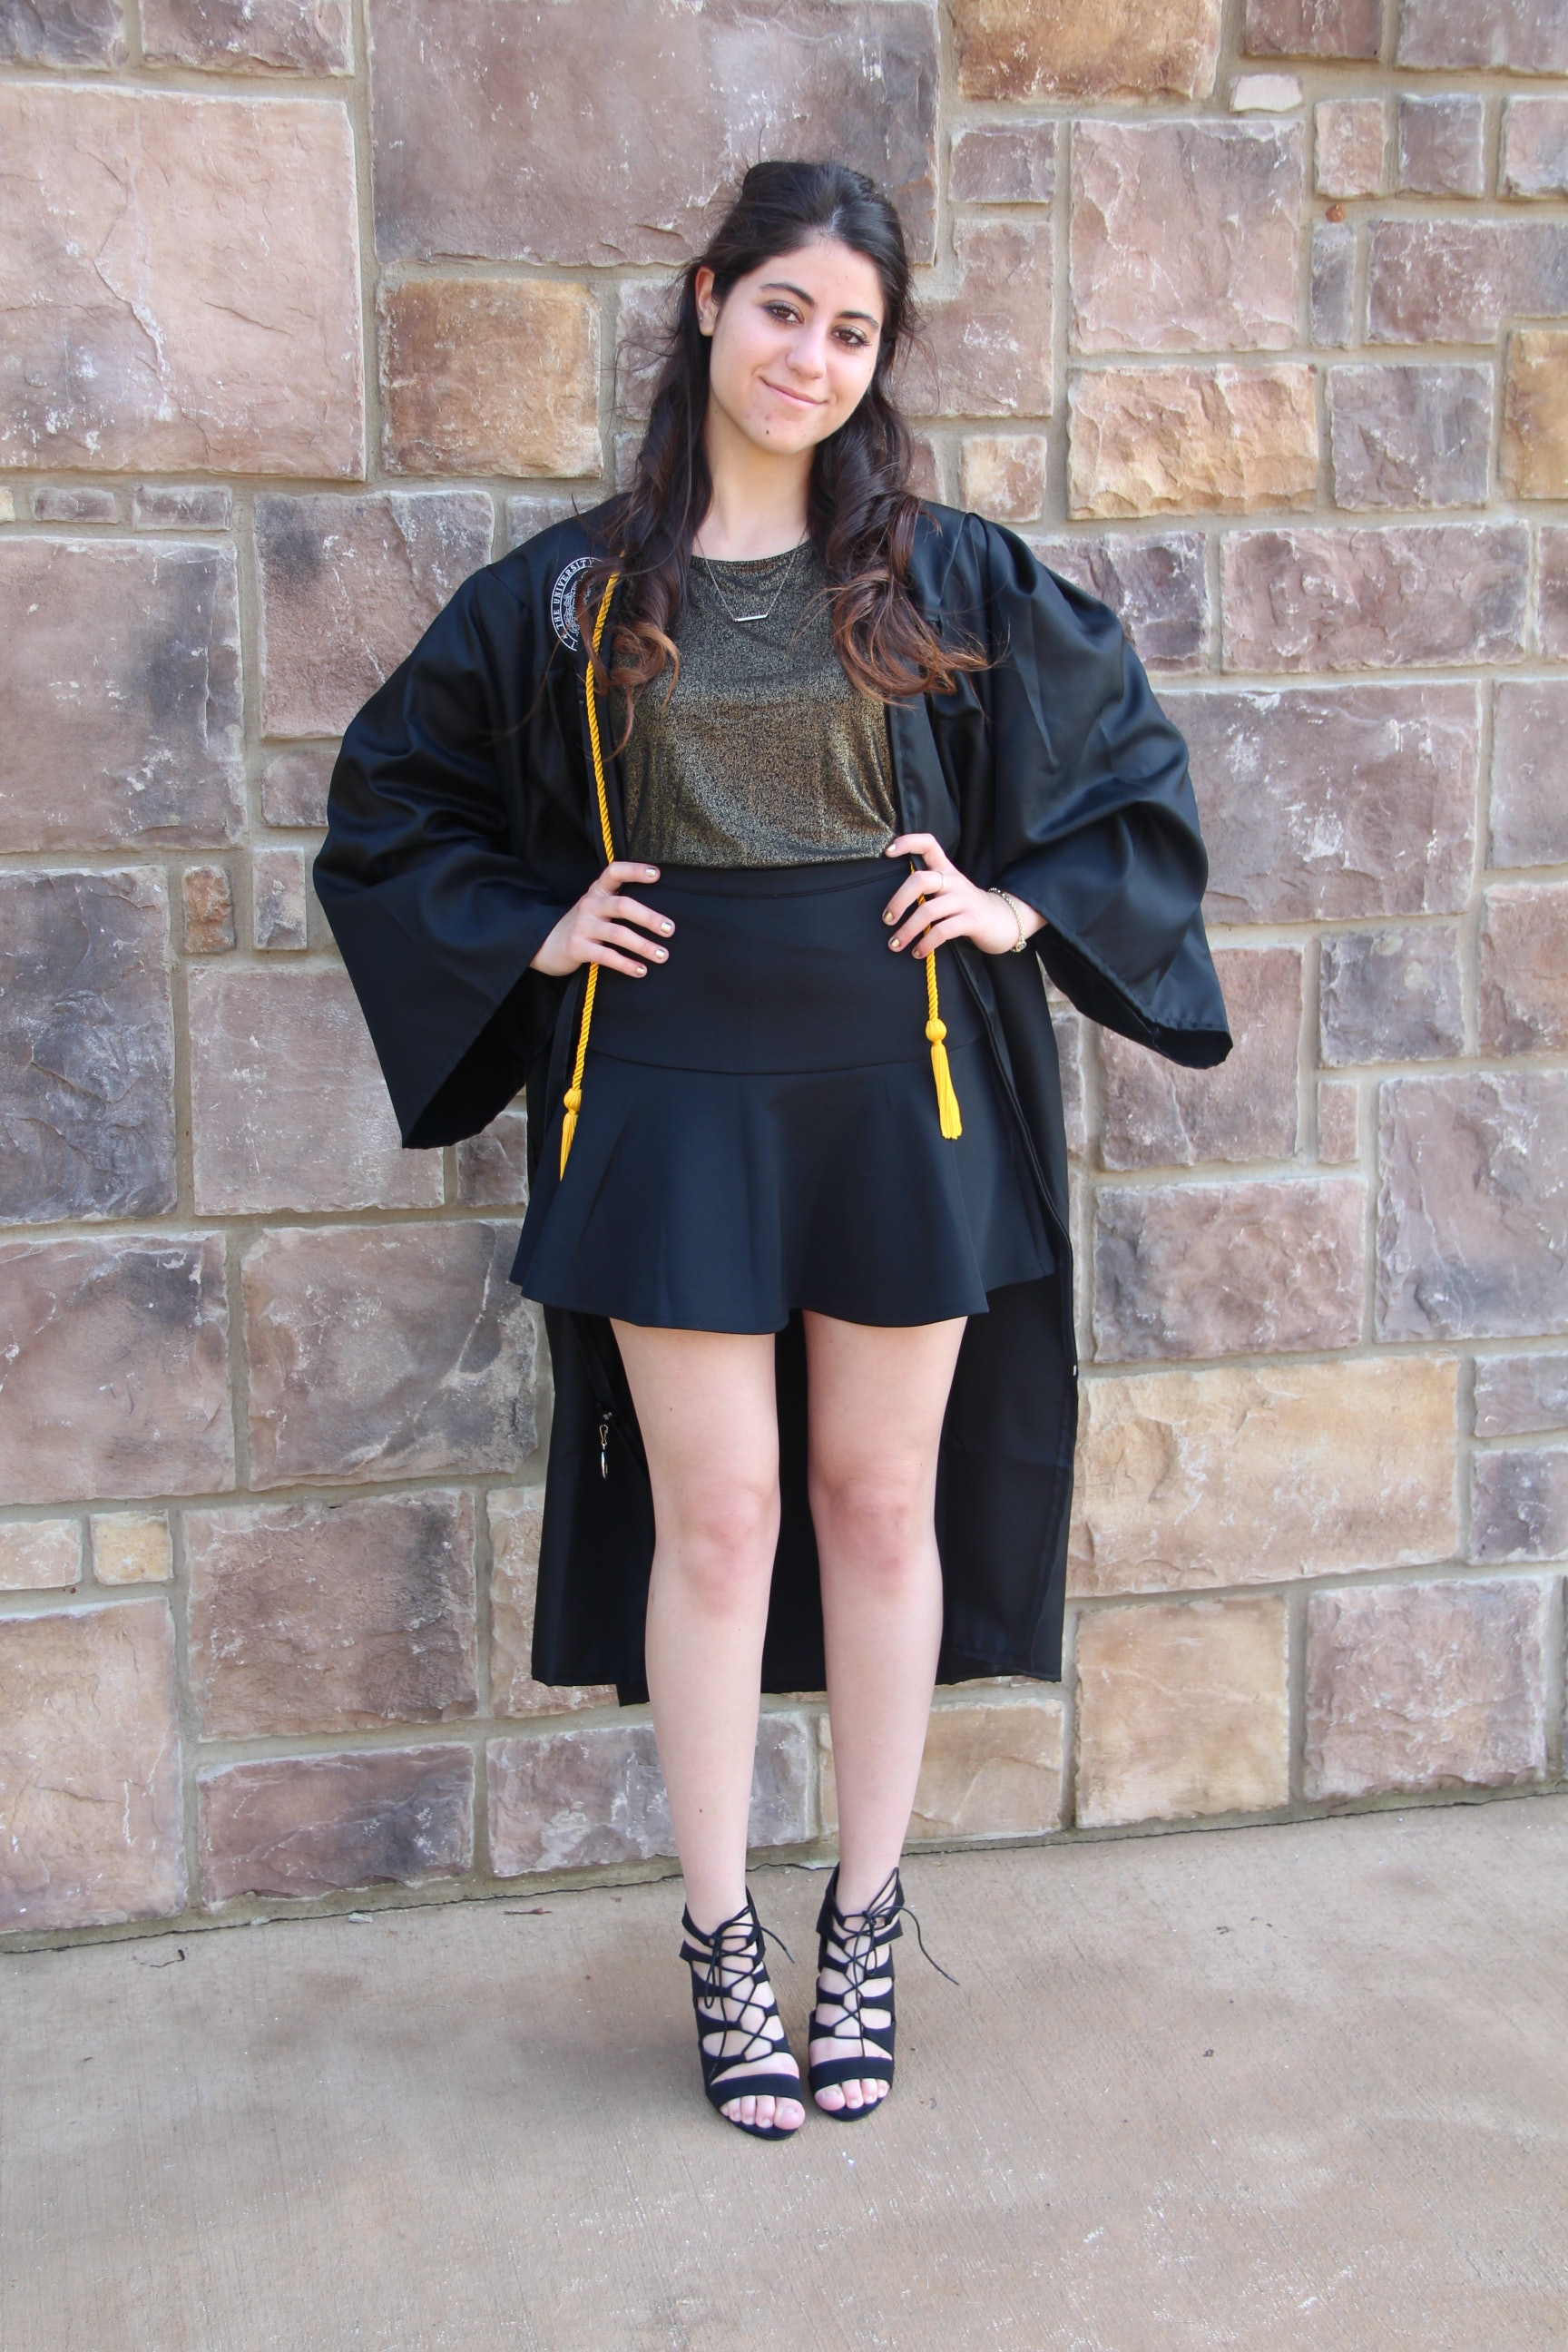 What Do You Wear To Graduation? 5 Outfit Ideas To Inspire You On ...